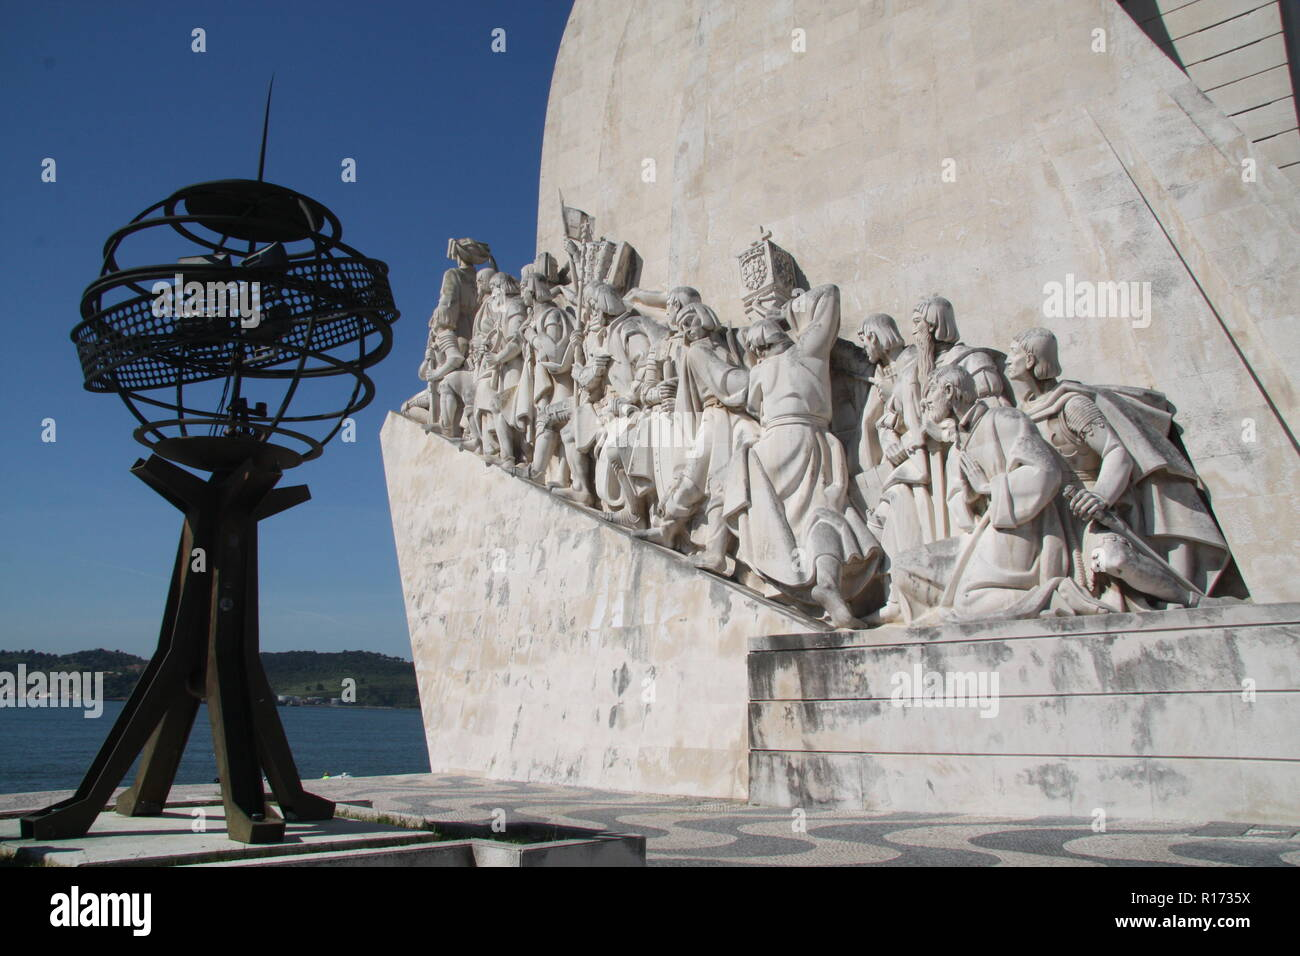 Monument to the Discoveries, Belem, Lisbon - Stock Image